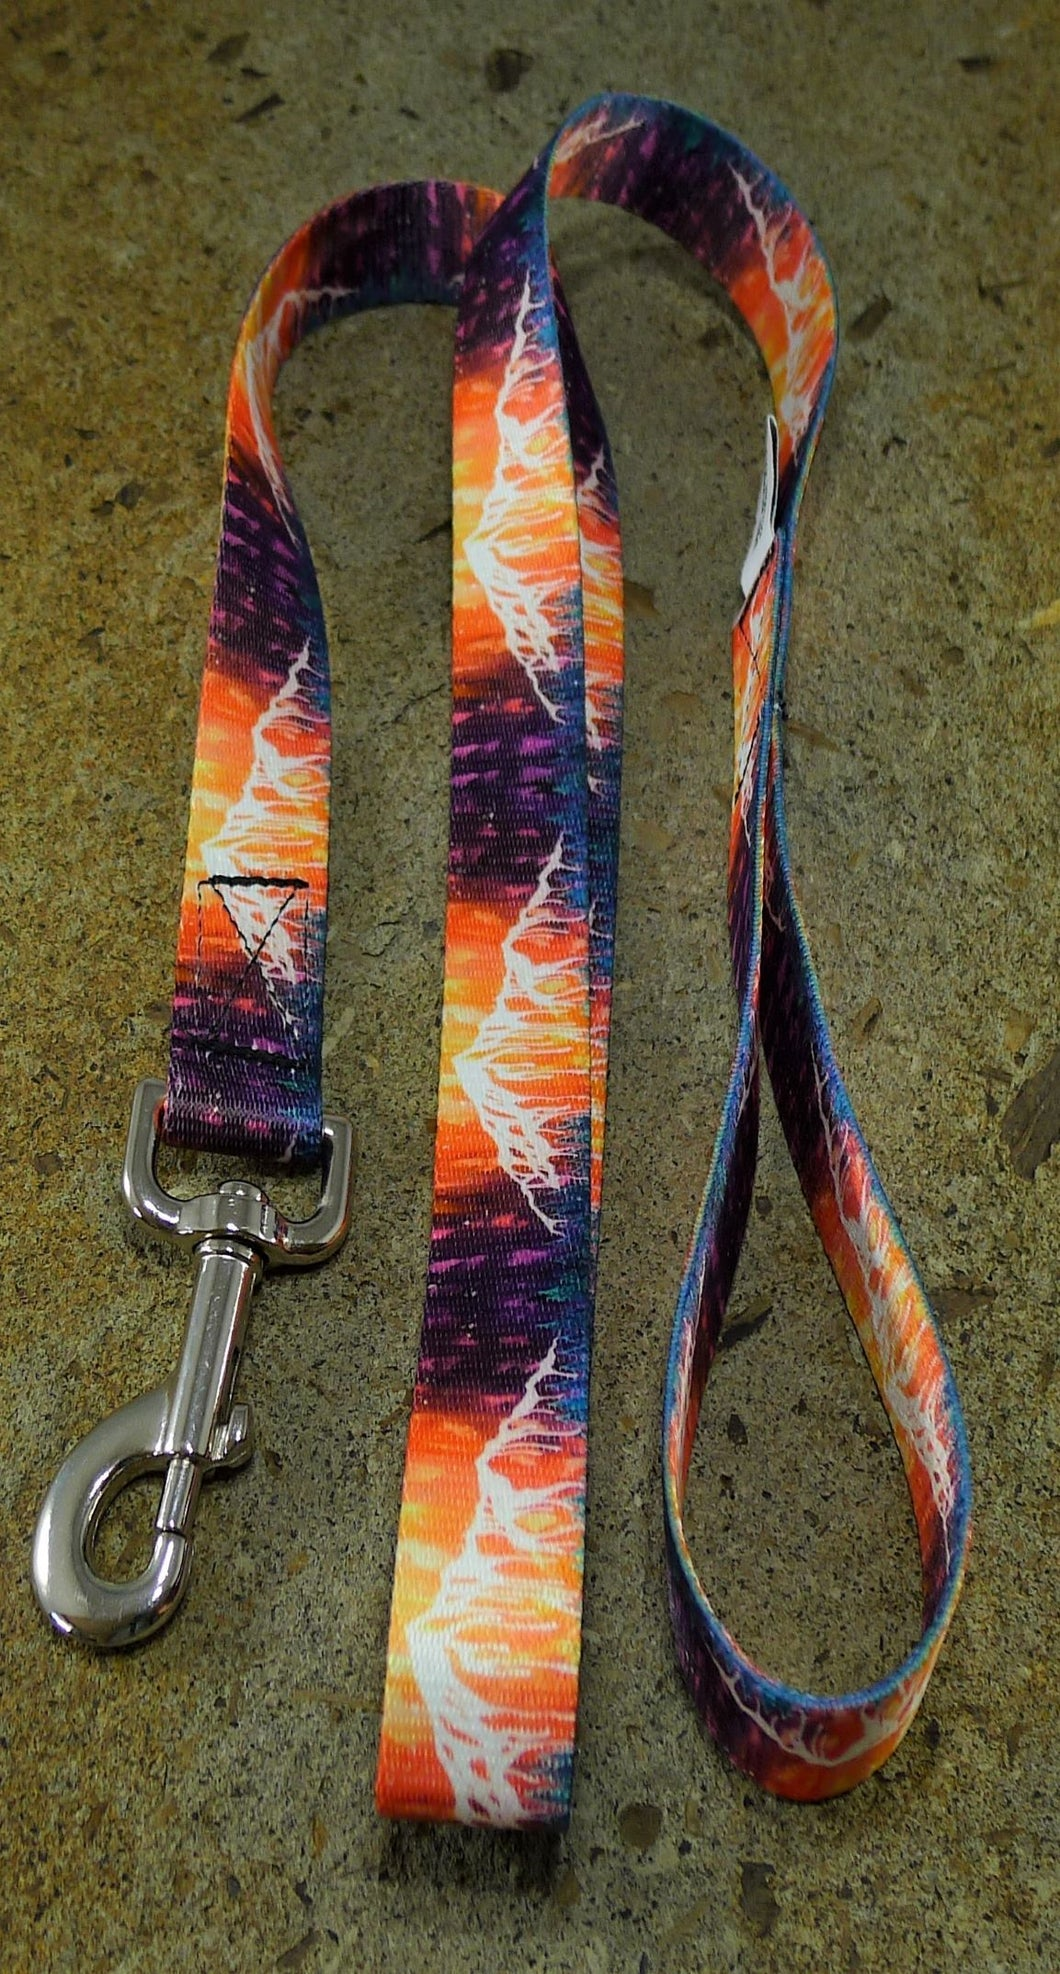 Dog Leash Lone Peak Big Sky Montana Heather Rapp